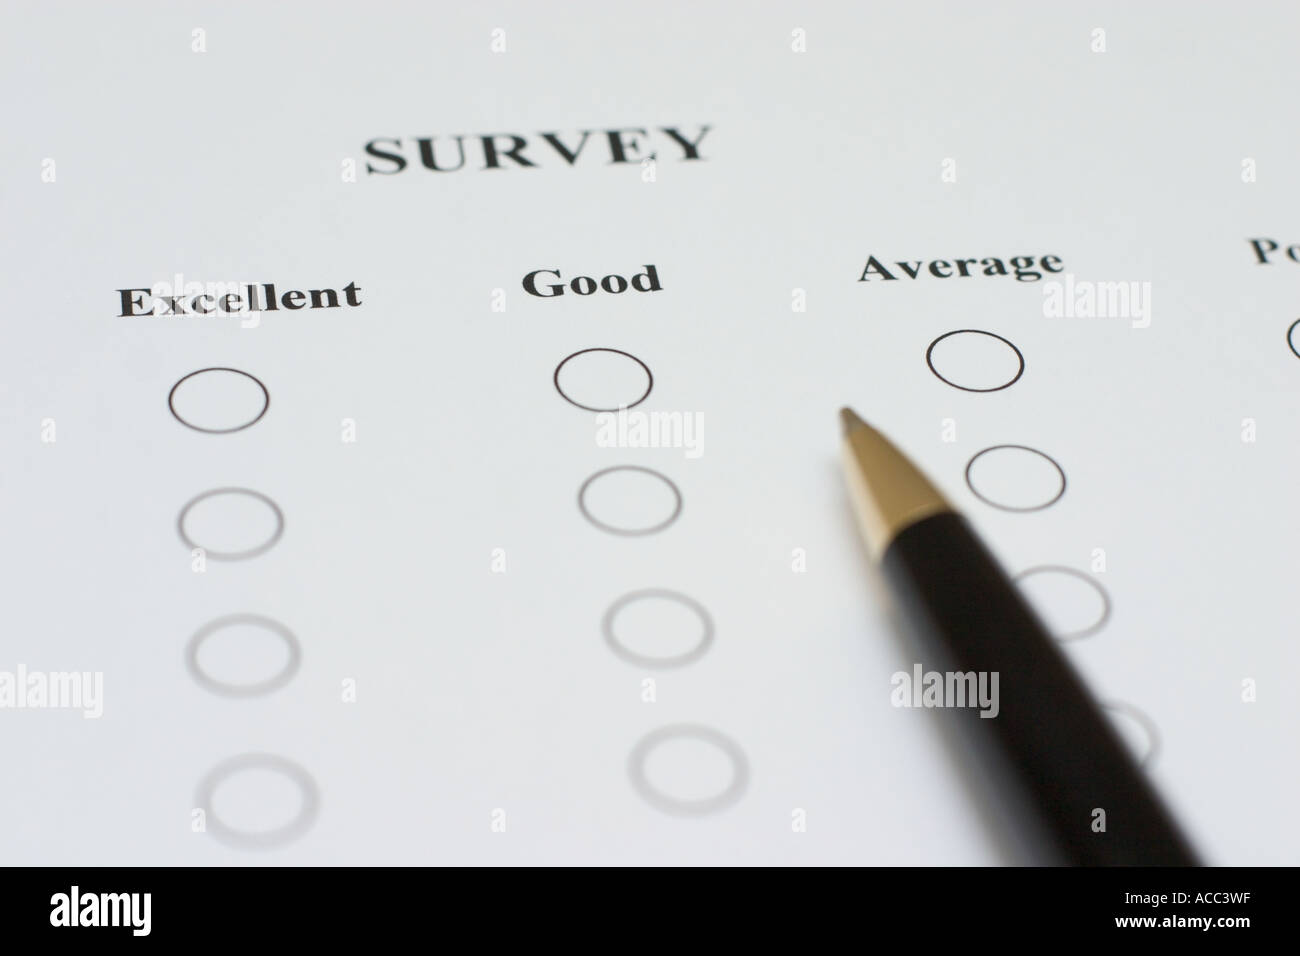 pen on survey form with the words excellent good average - Stock Image